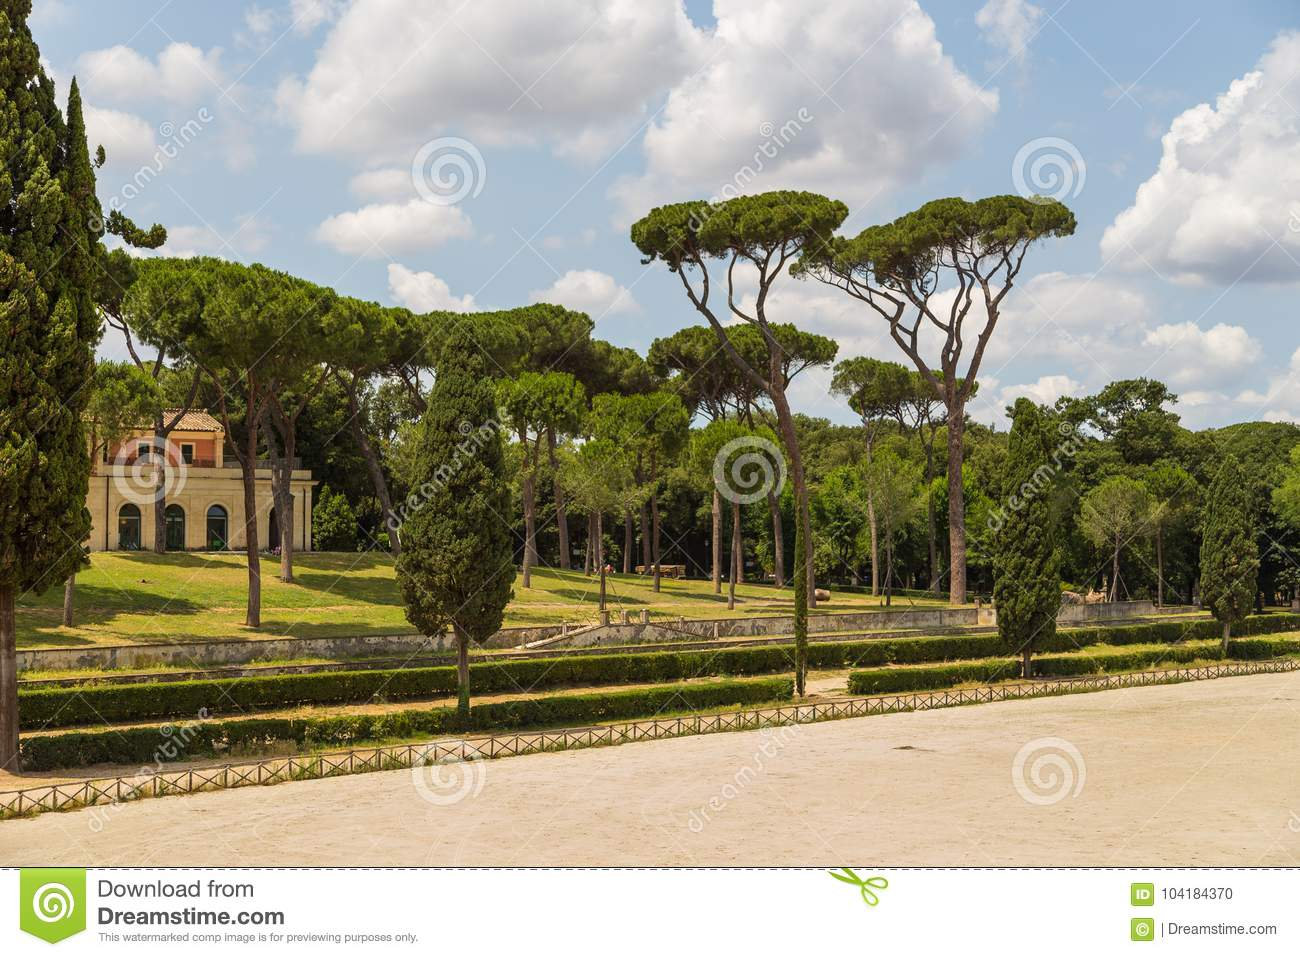 Siena Square Inside The Villa Borghese Gardens. Stock Photo - Image ...